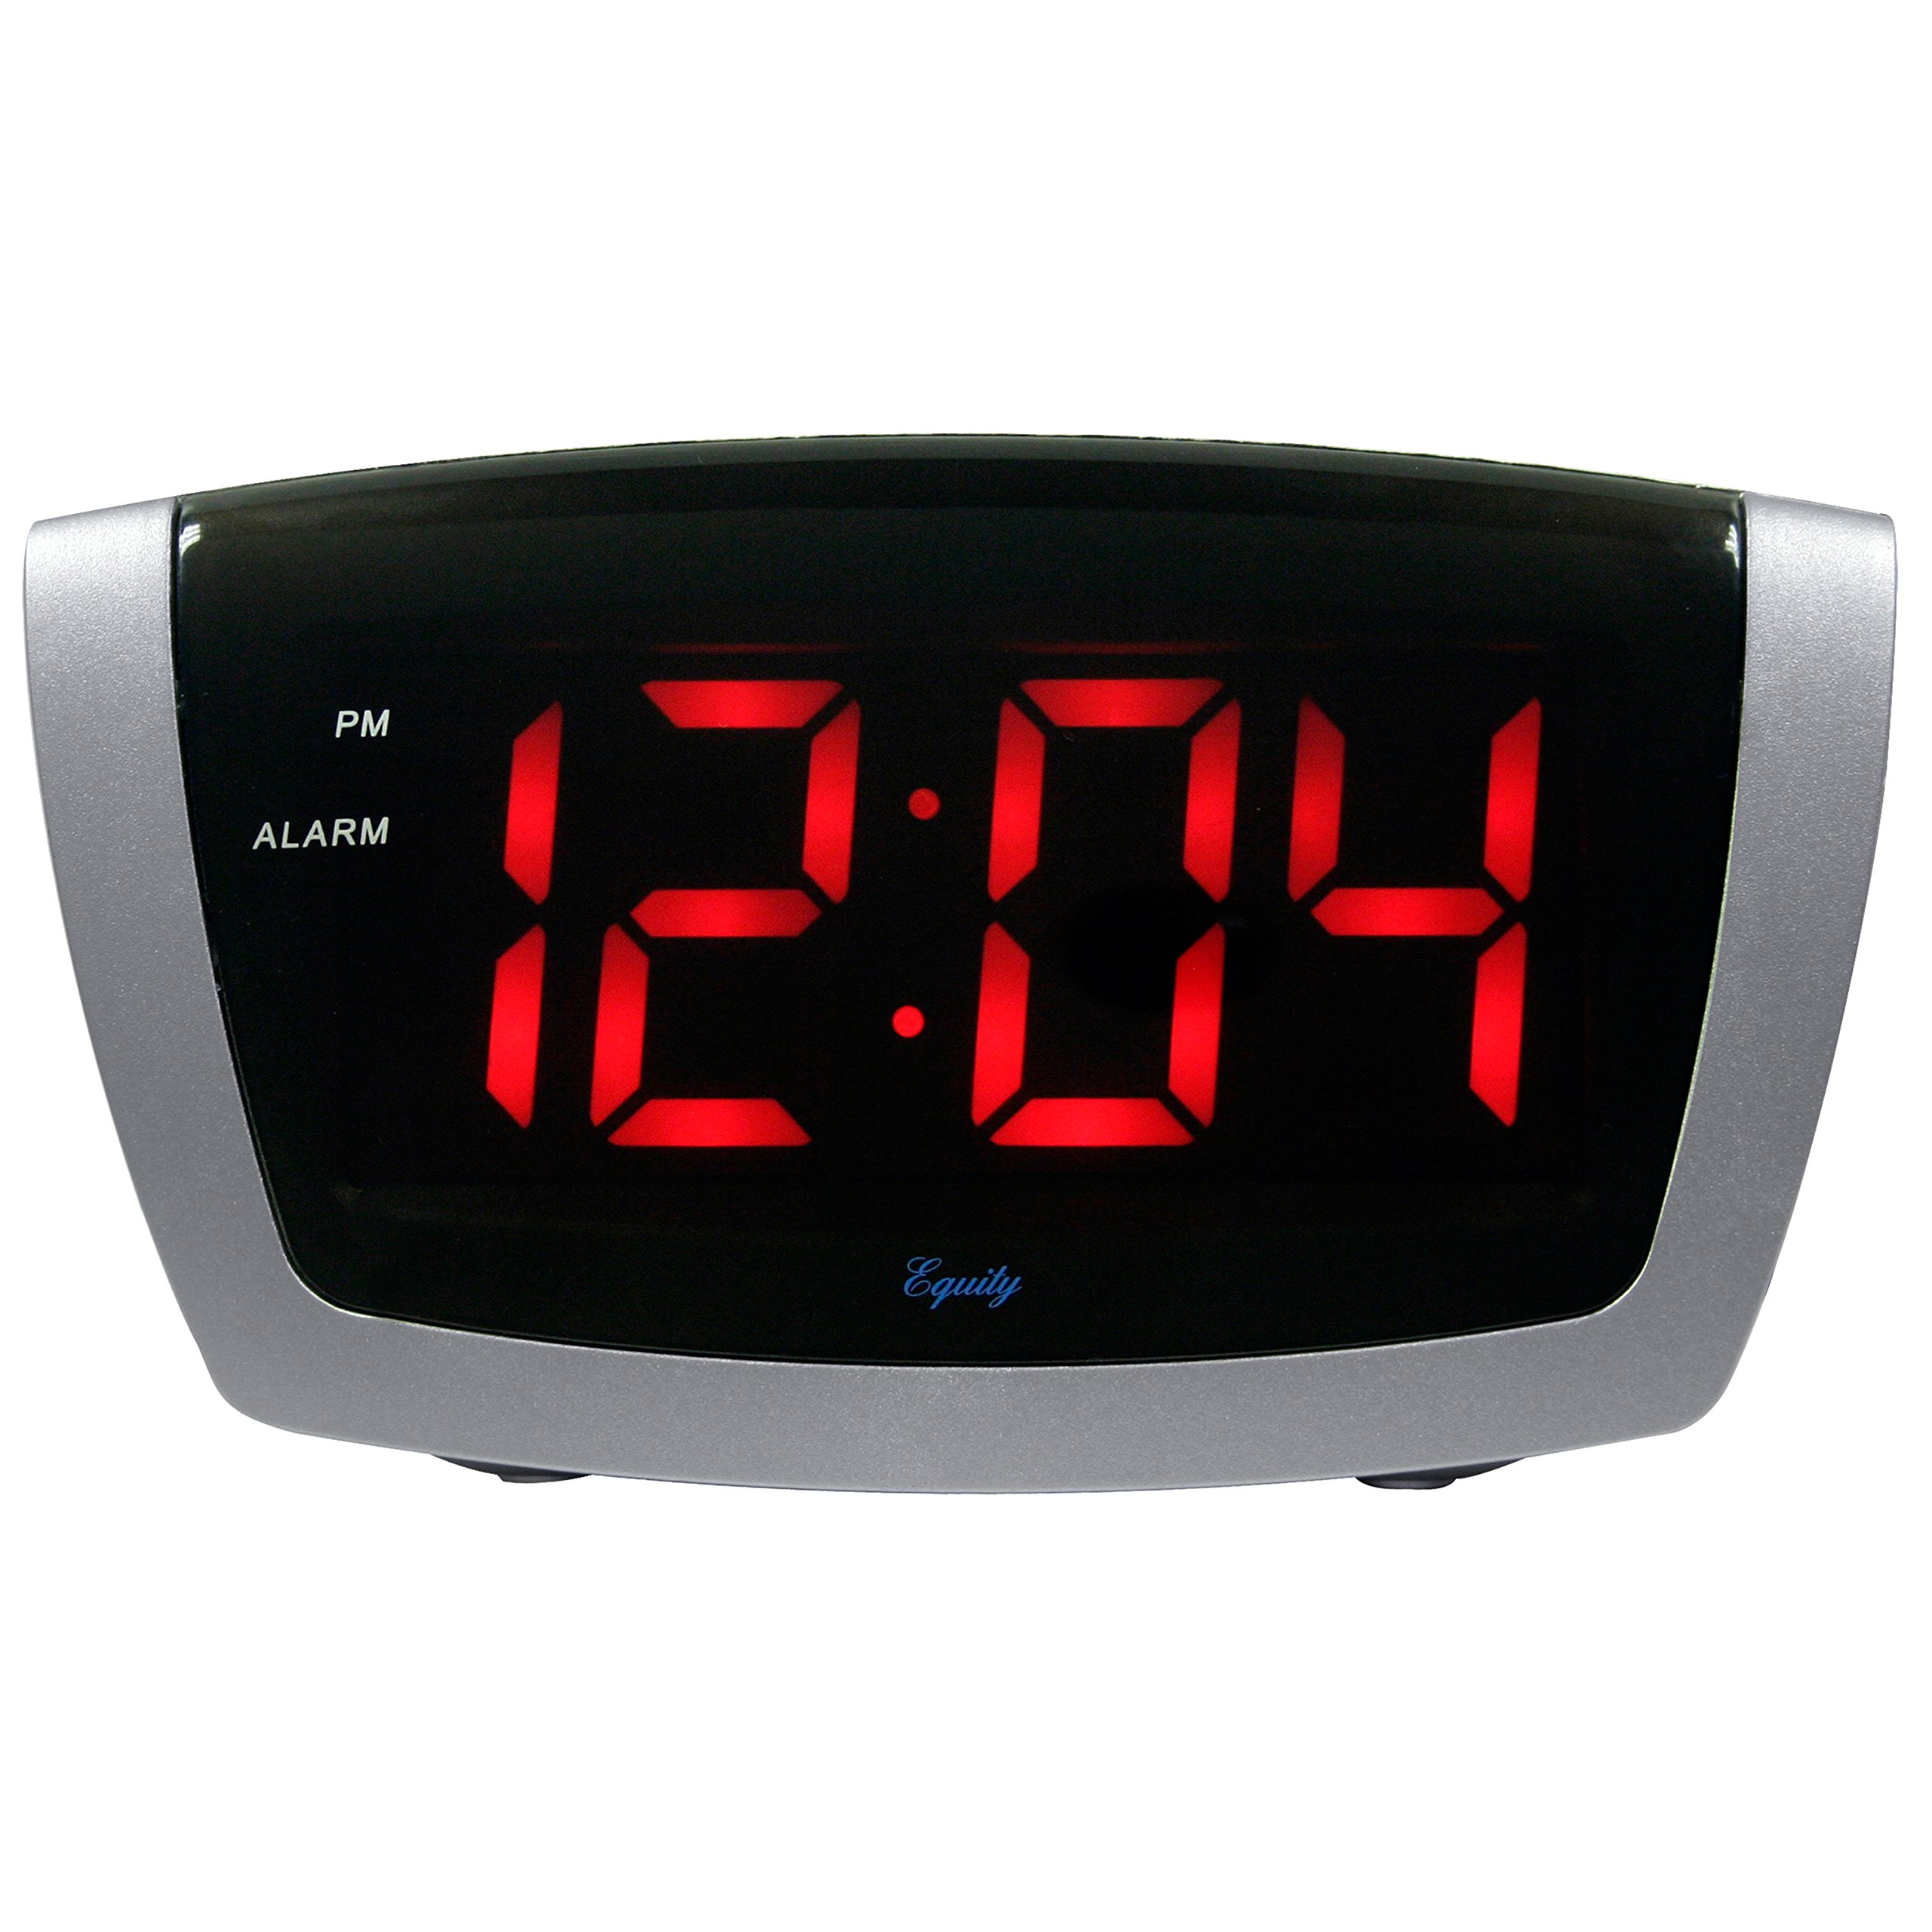 Equity by La Crosse 75906 LED Alarm Clock with High/Low Dimmer, 1.8'', Red